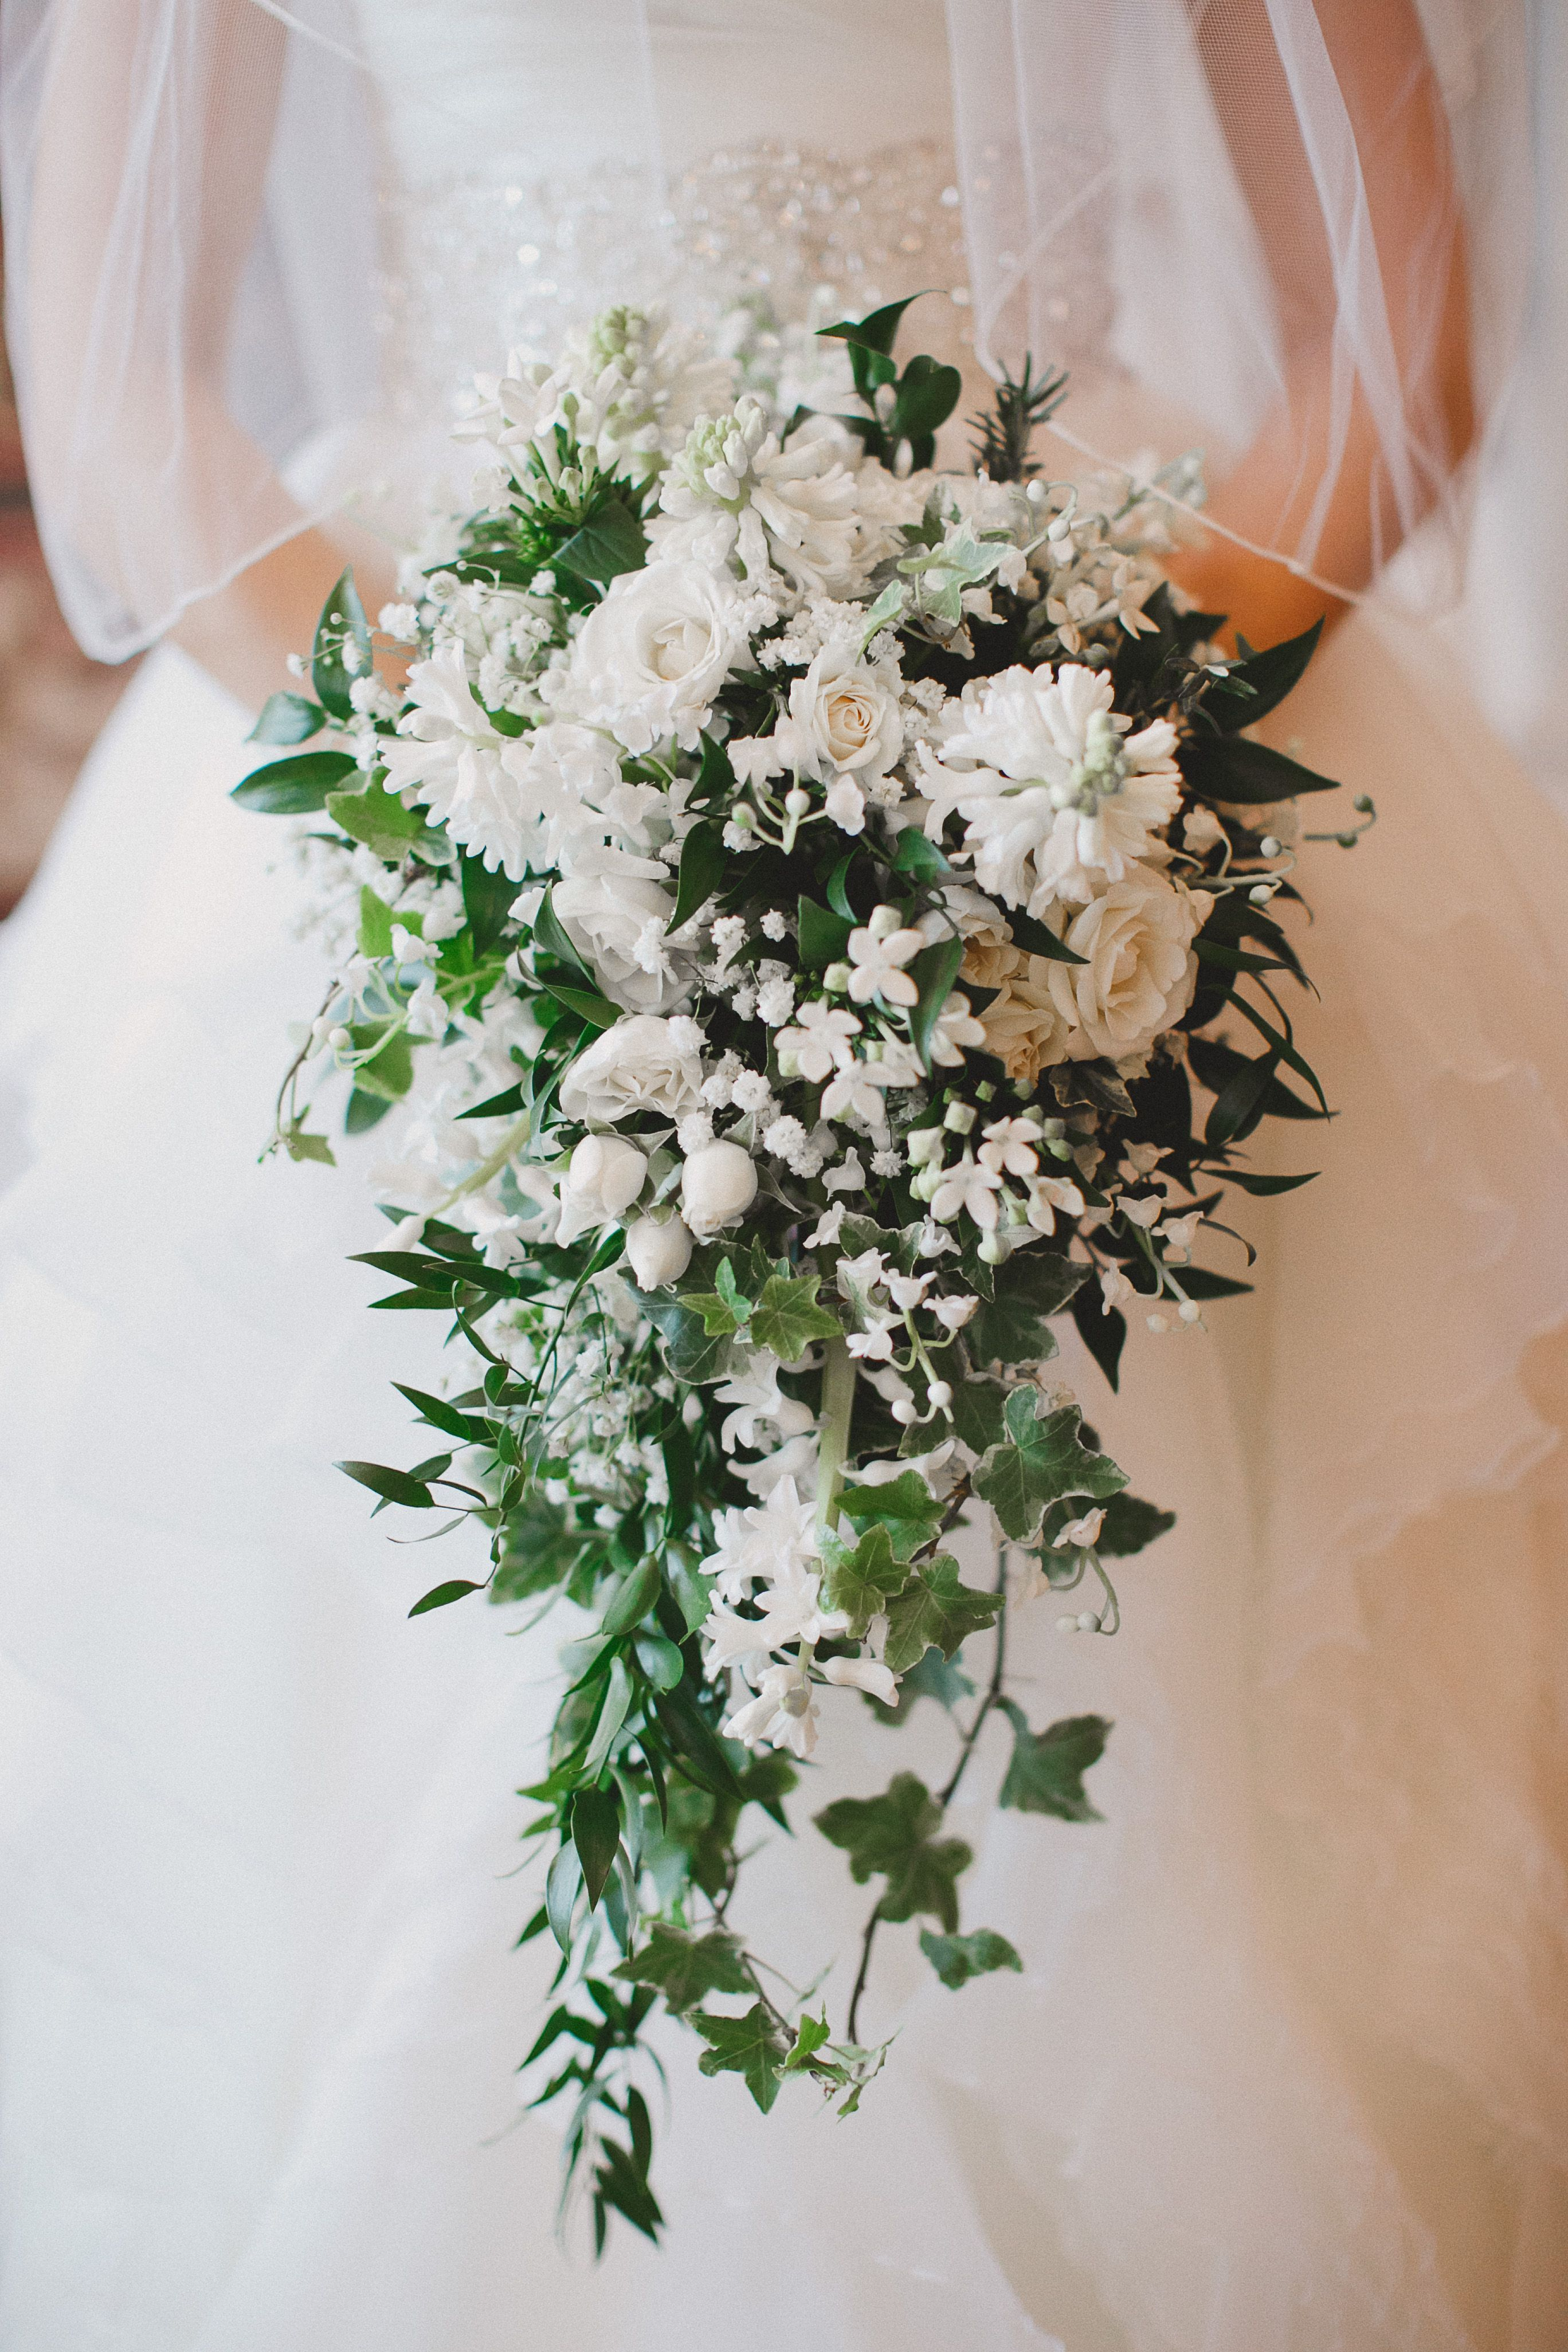 Cascading Bouquet Pictured Bouvardia Lilly Of The Valley Hyacinth Spray Rose Babys Cascading Wedding Bouquets Rose Wedding Bouquet White Wedding Bouquets